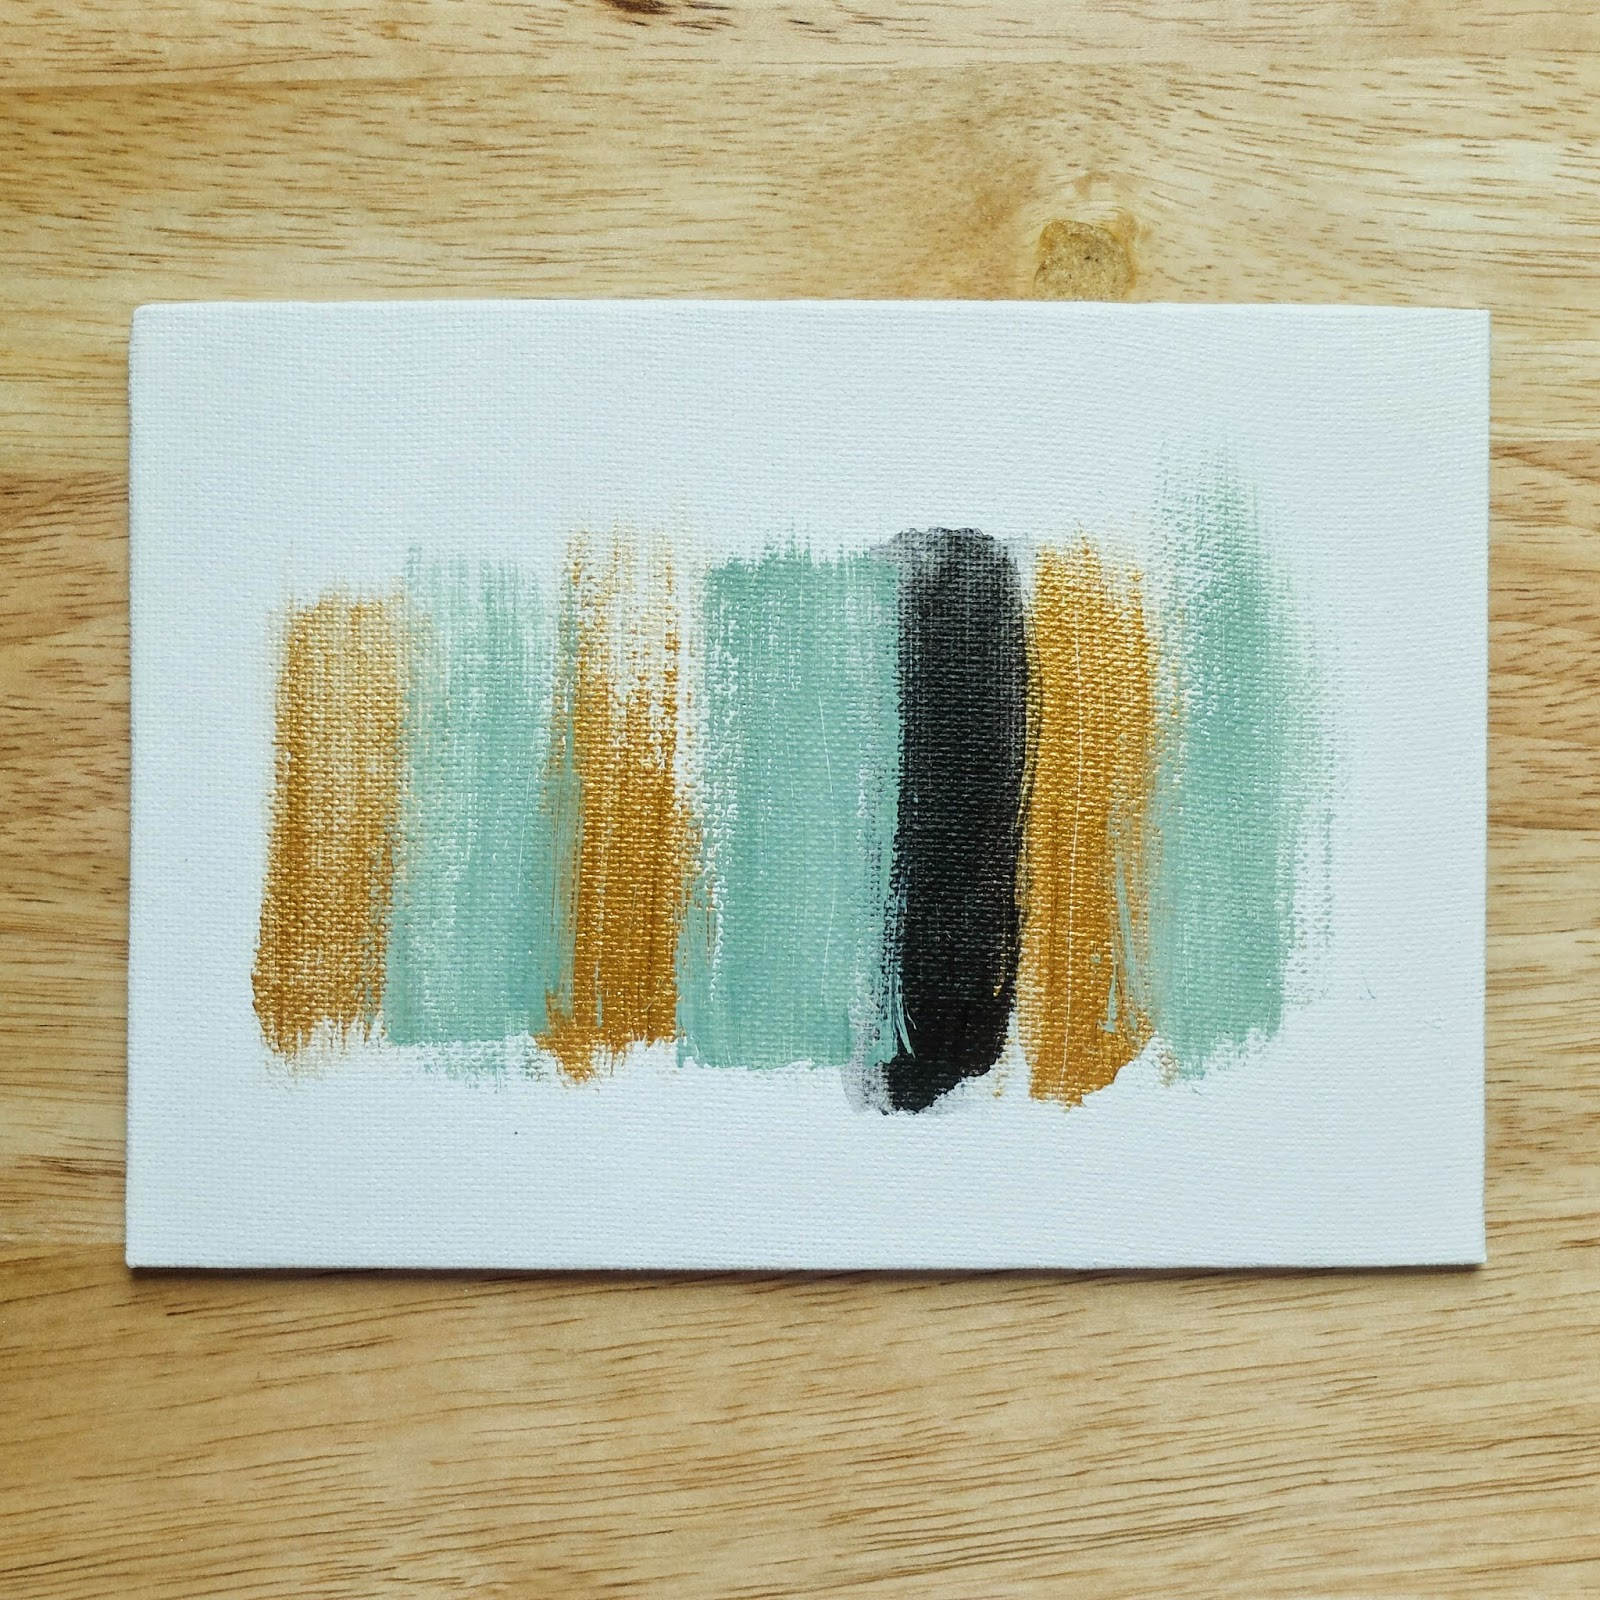 Swatch painting 001